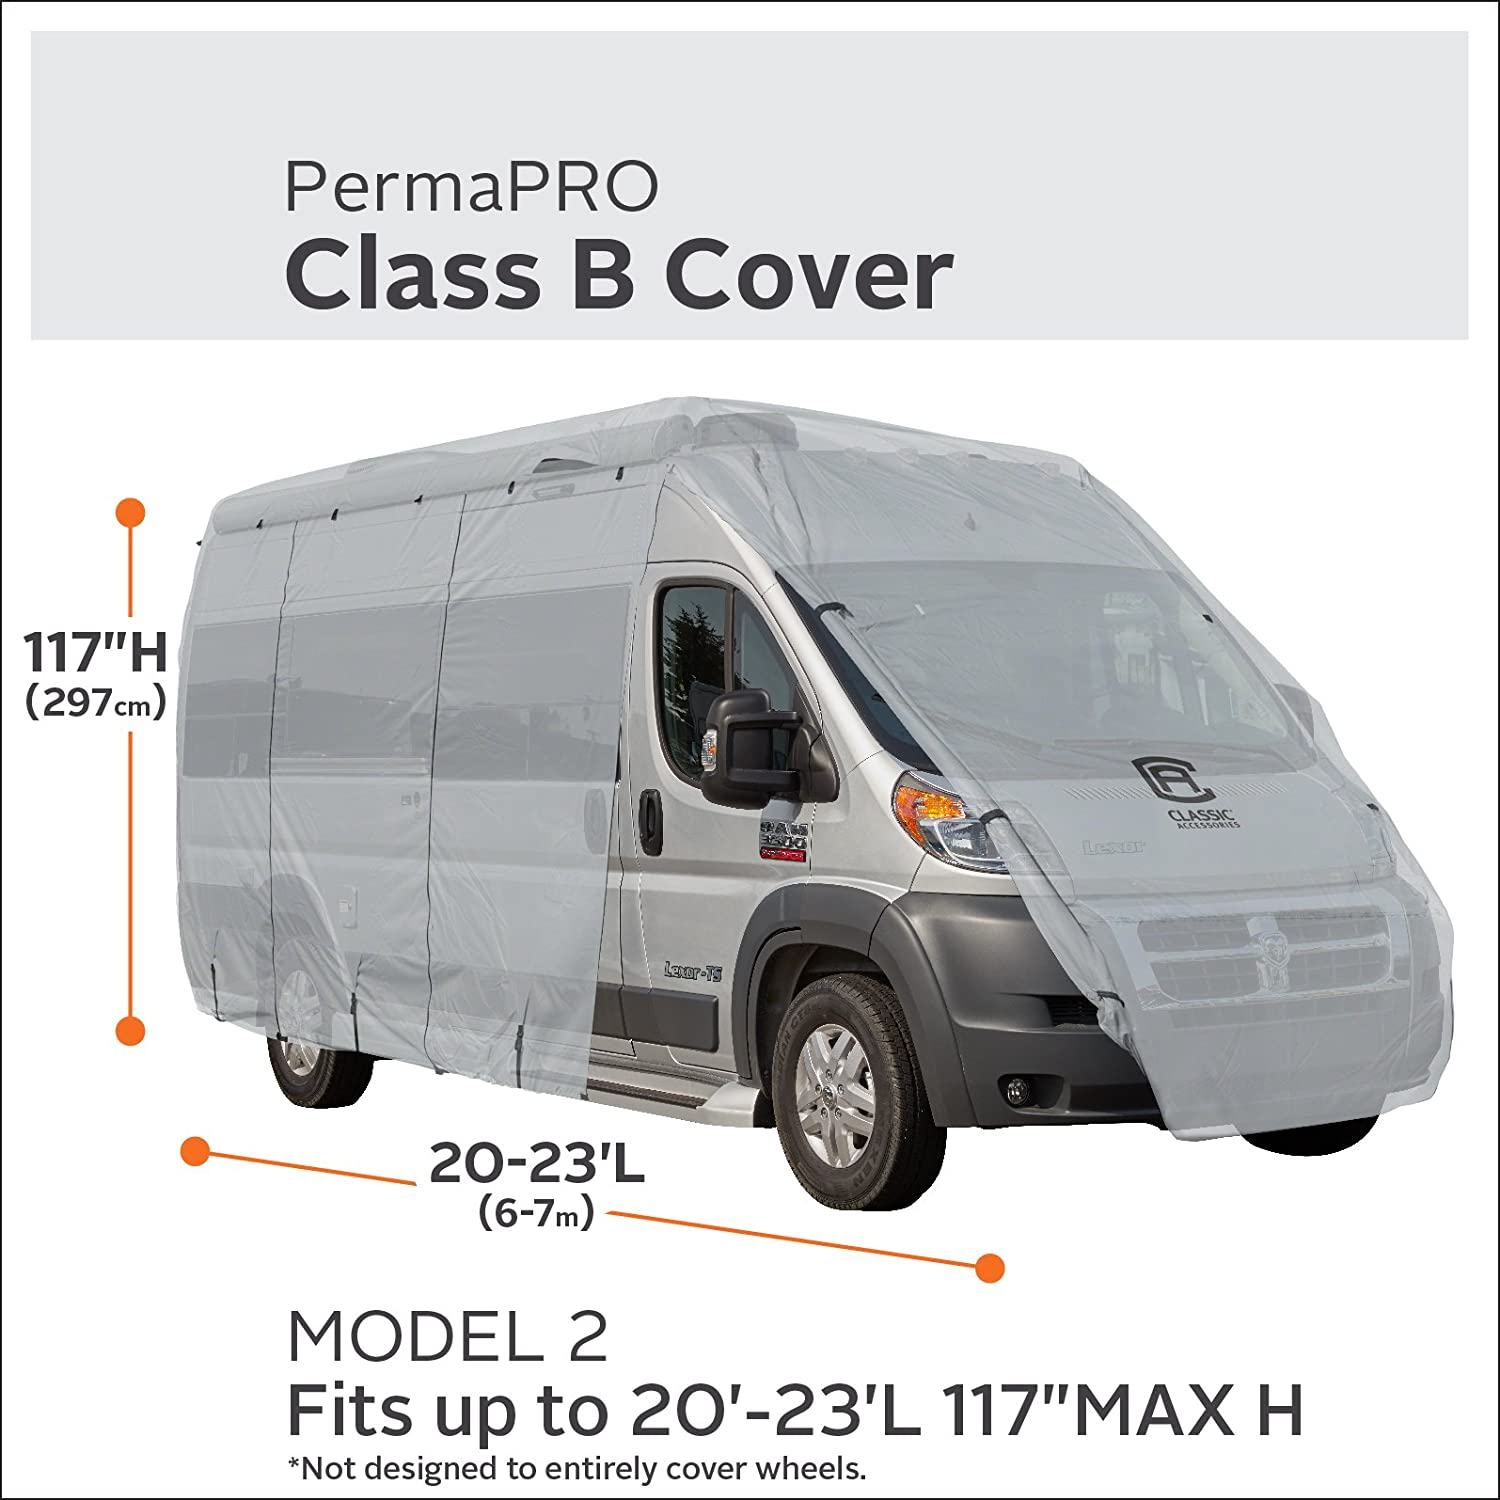 80-413-161001-RT Fits 23-25 RVs Classic Accessories Overdrive PermaPRO Deluxe Class B RV Cover Lightweight Ripstop Fabric with RV Cover